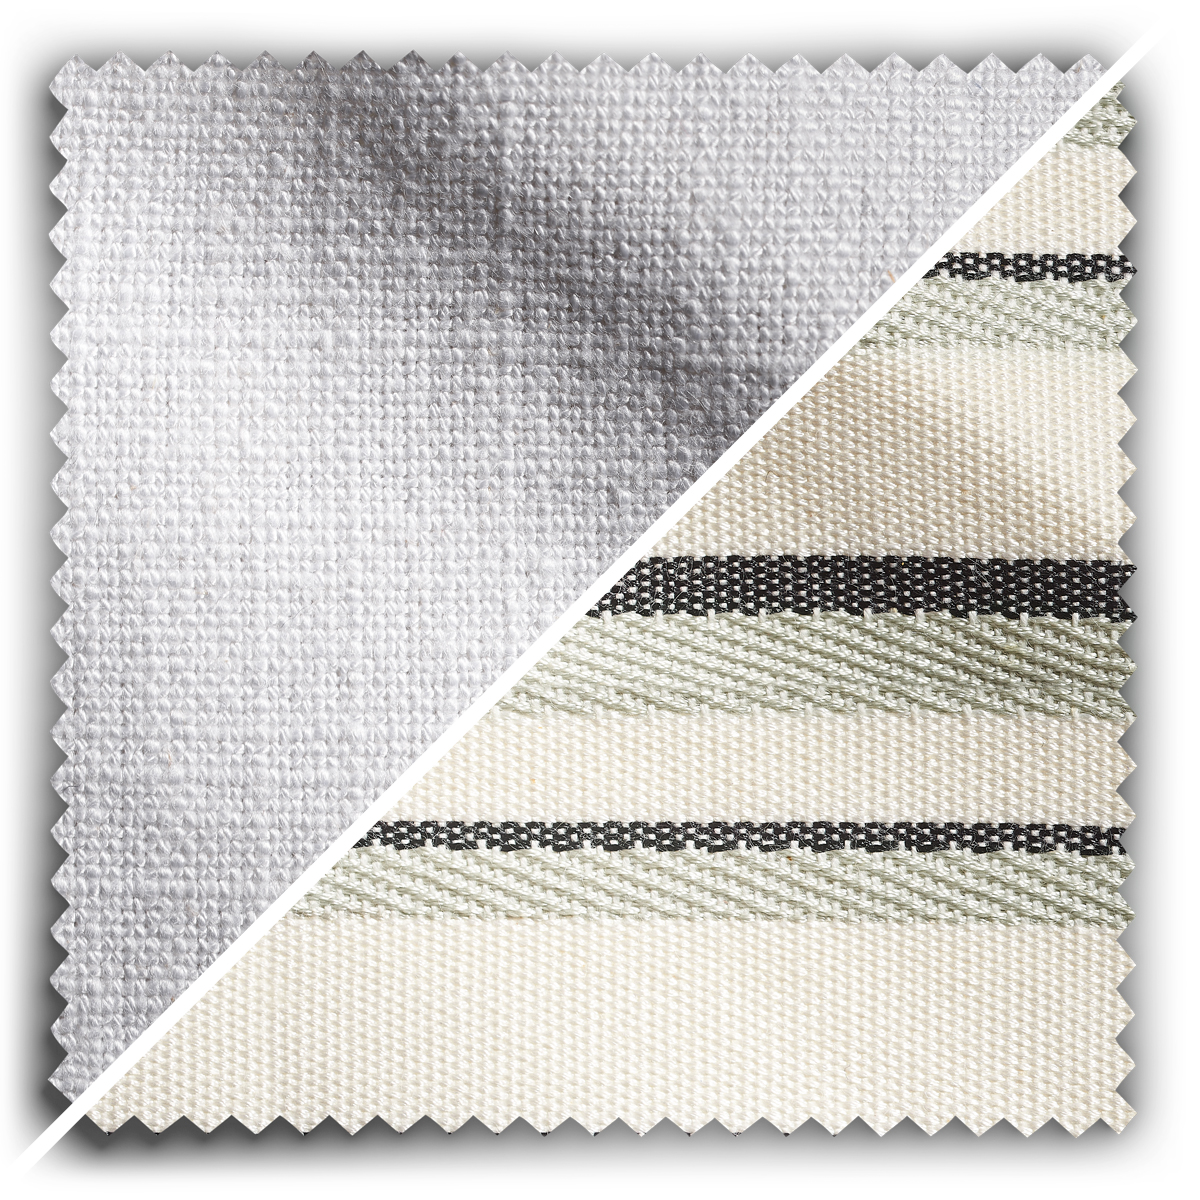 Image of Studio Stripes Antique White Linen fabric